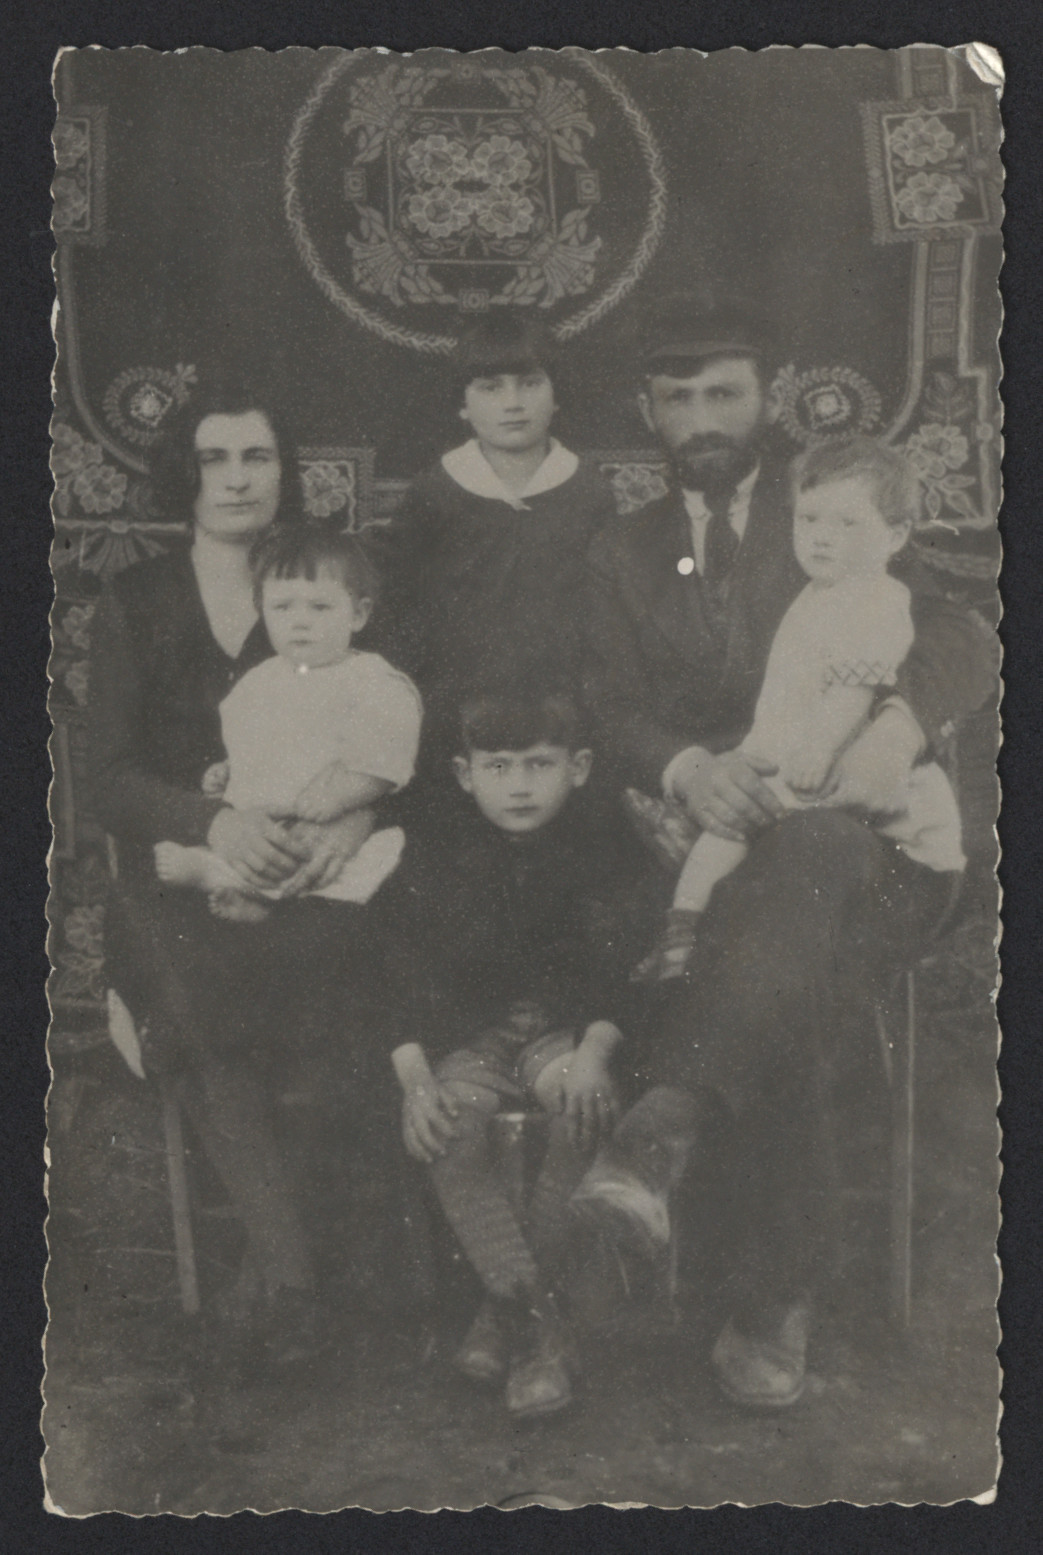 Portrait of the Zytnik family..  Pictured are Mosze and Brandla Zytnik with their children Rozia, Herszl, Zalman, and Judel (Idl)